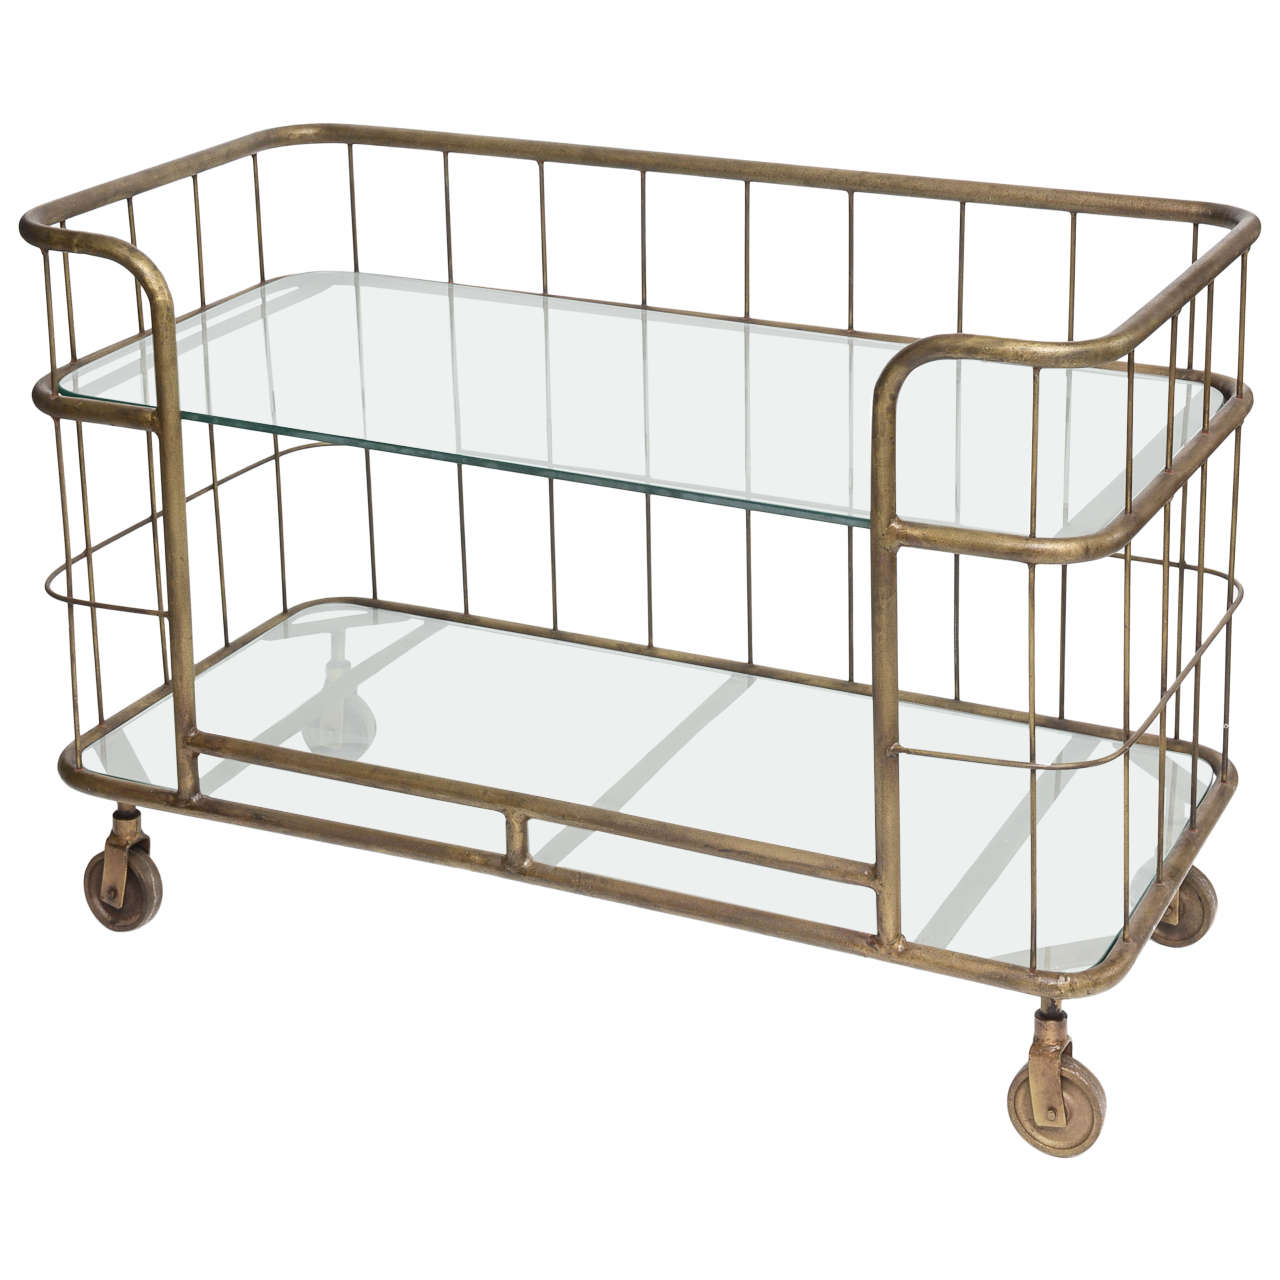 spa towel storage. Interesting Towel Industrial Bar Cart Or Spa Towel Storage For Sale To A